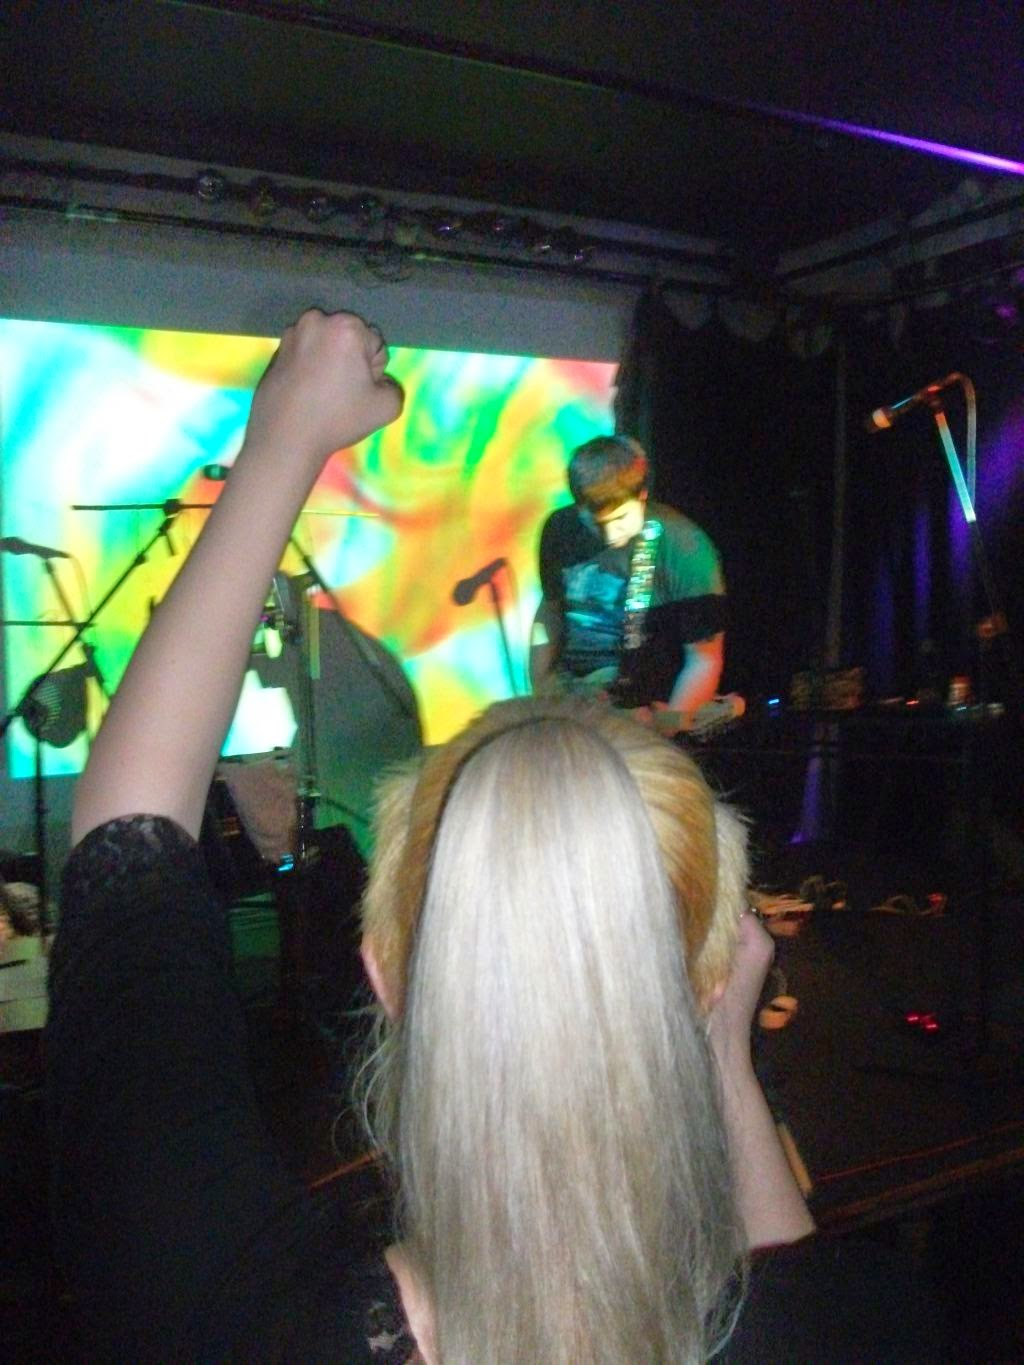 fist in the air while post rock live gig dichotomy engine drone noise